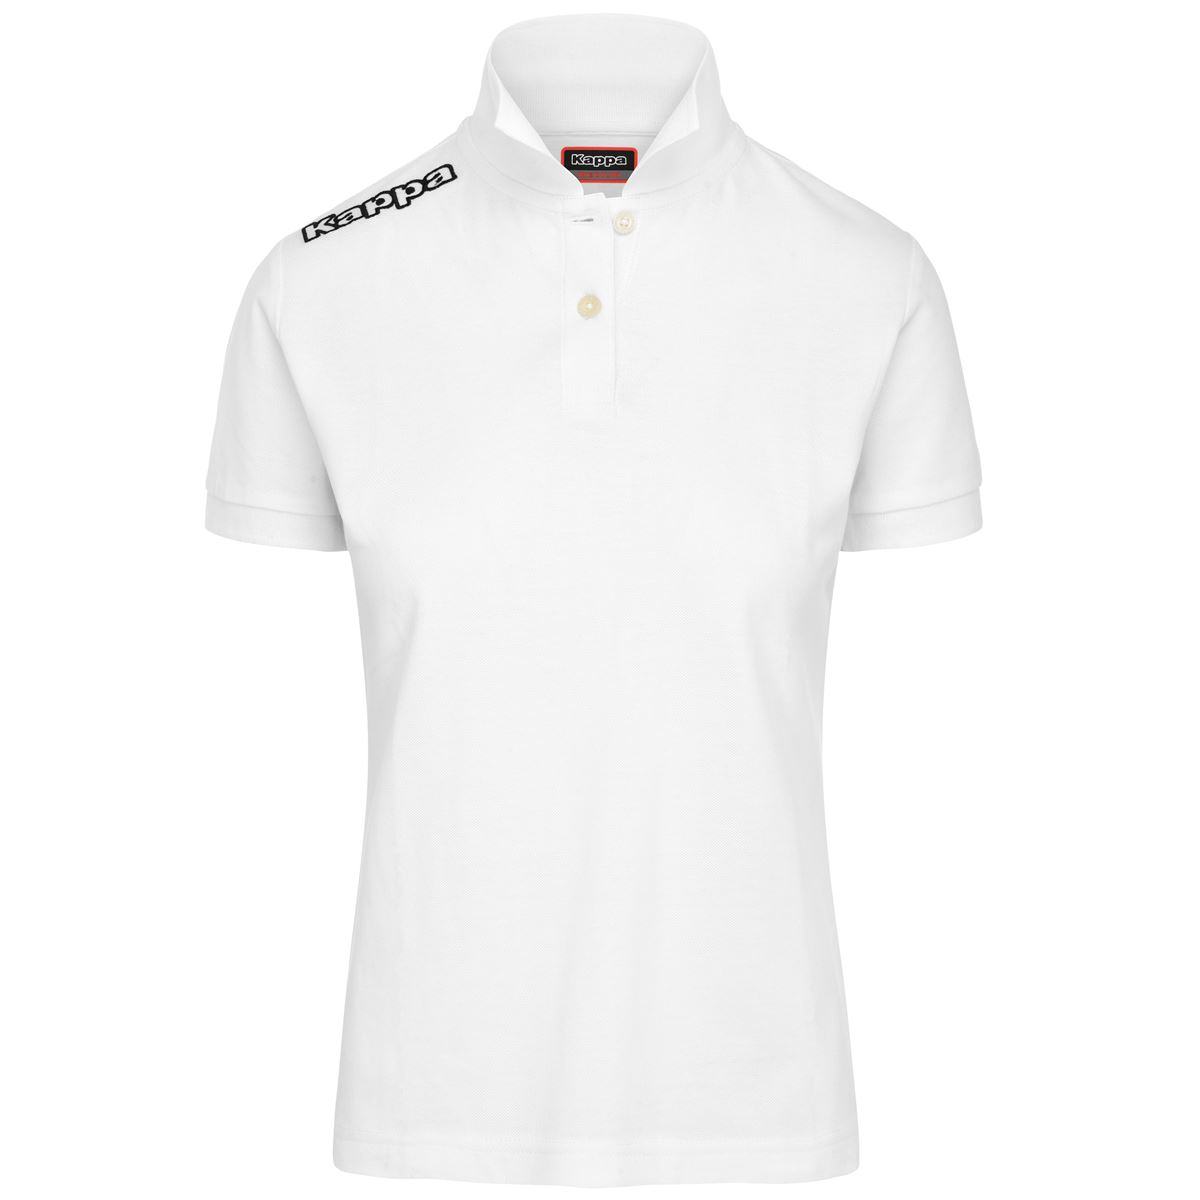 Kappa POLO SHIRTS KAPPA4TRAINING POLO WSS SLIM Girl Training Polo